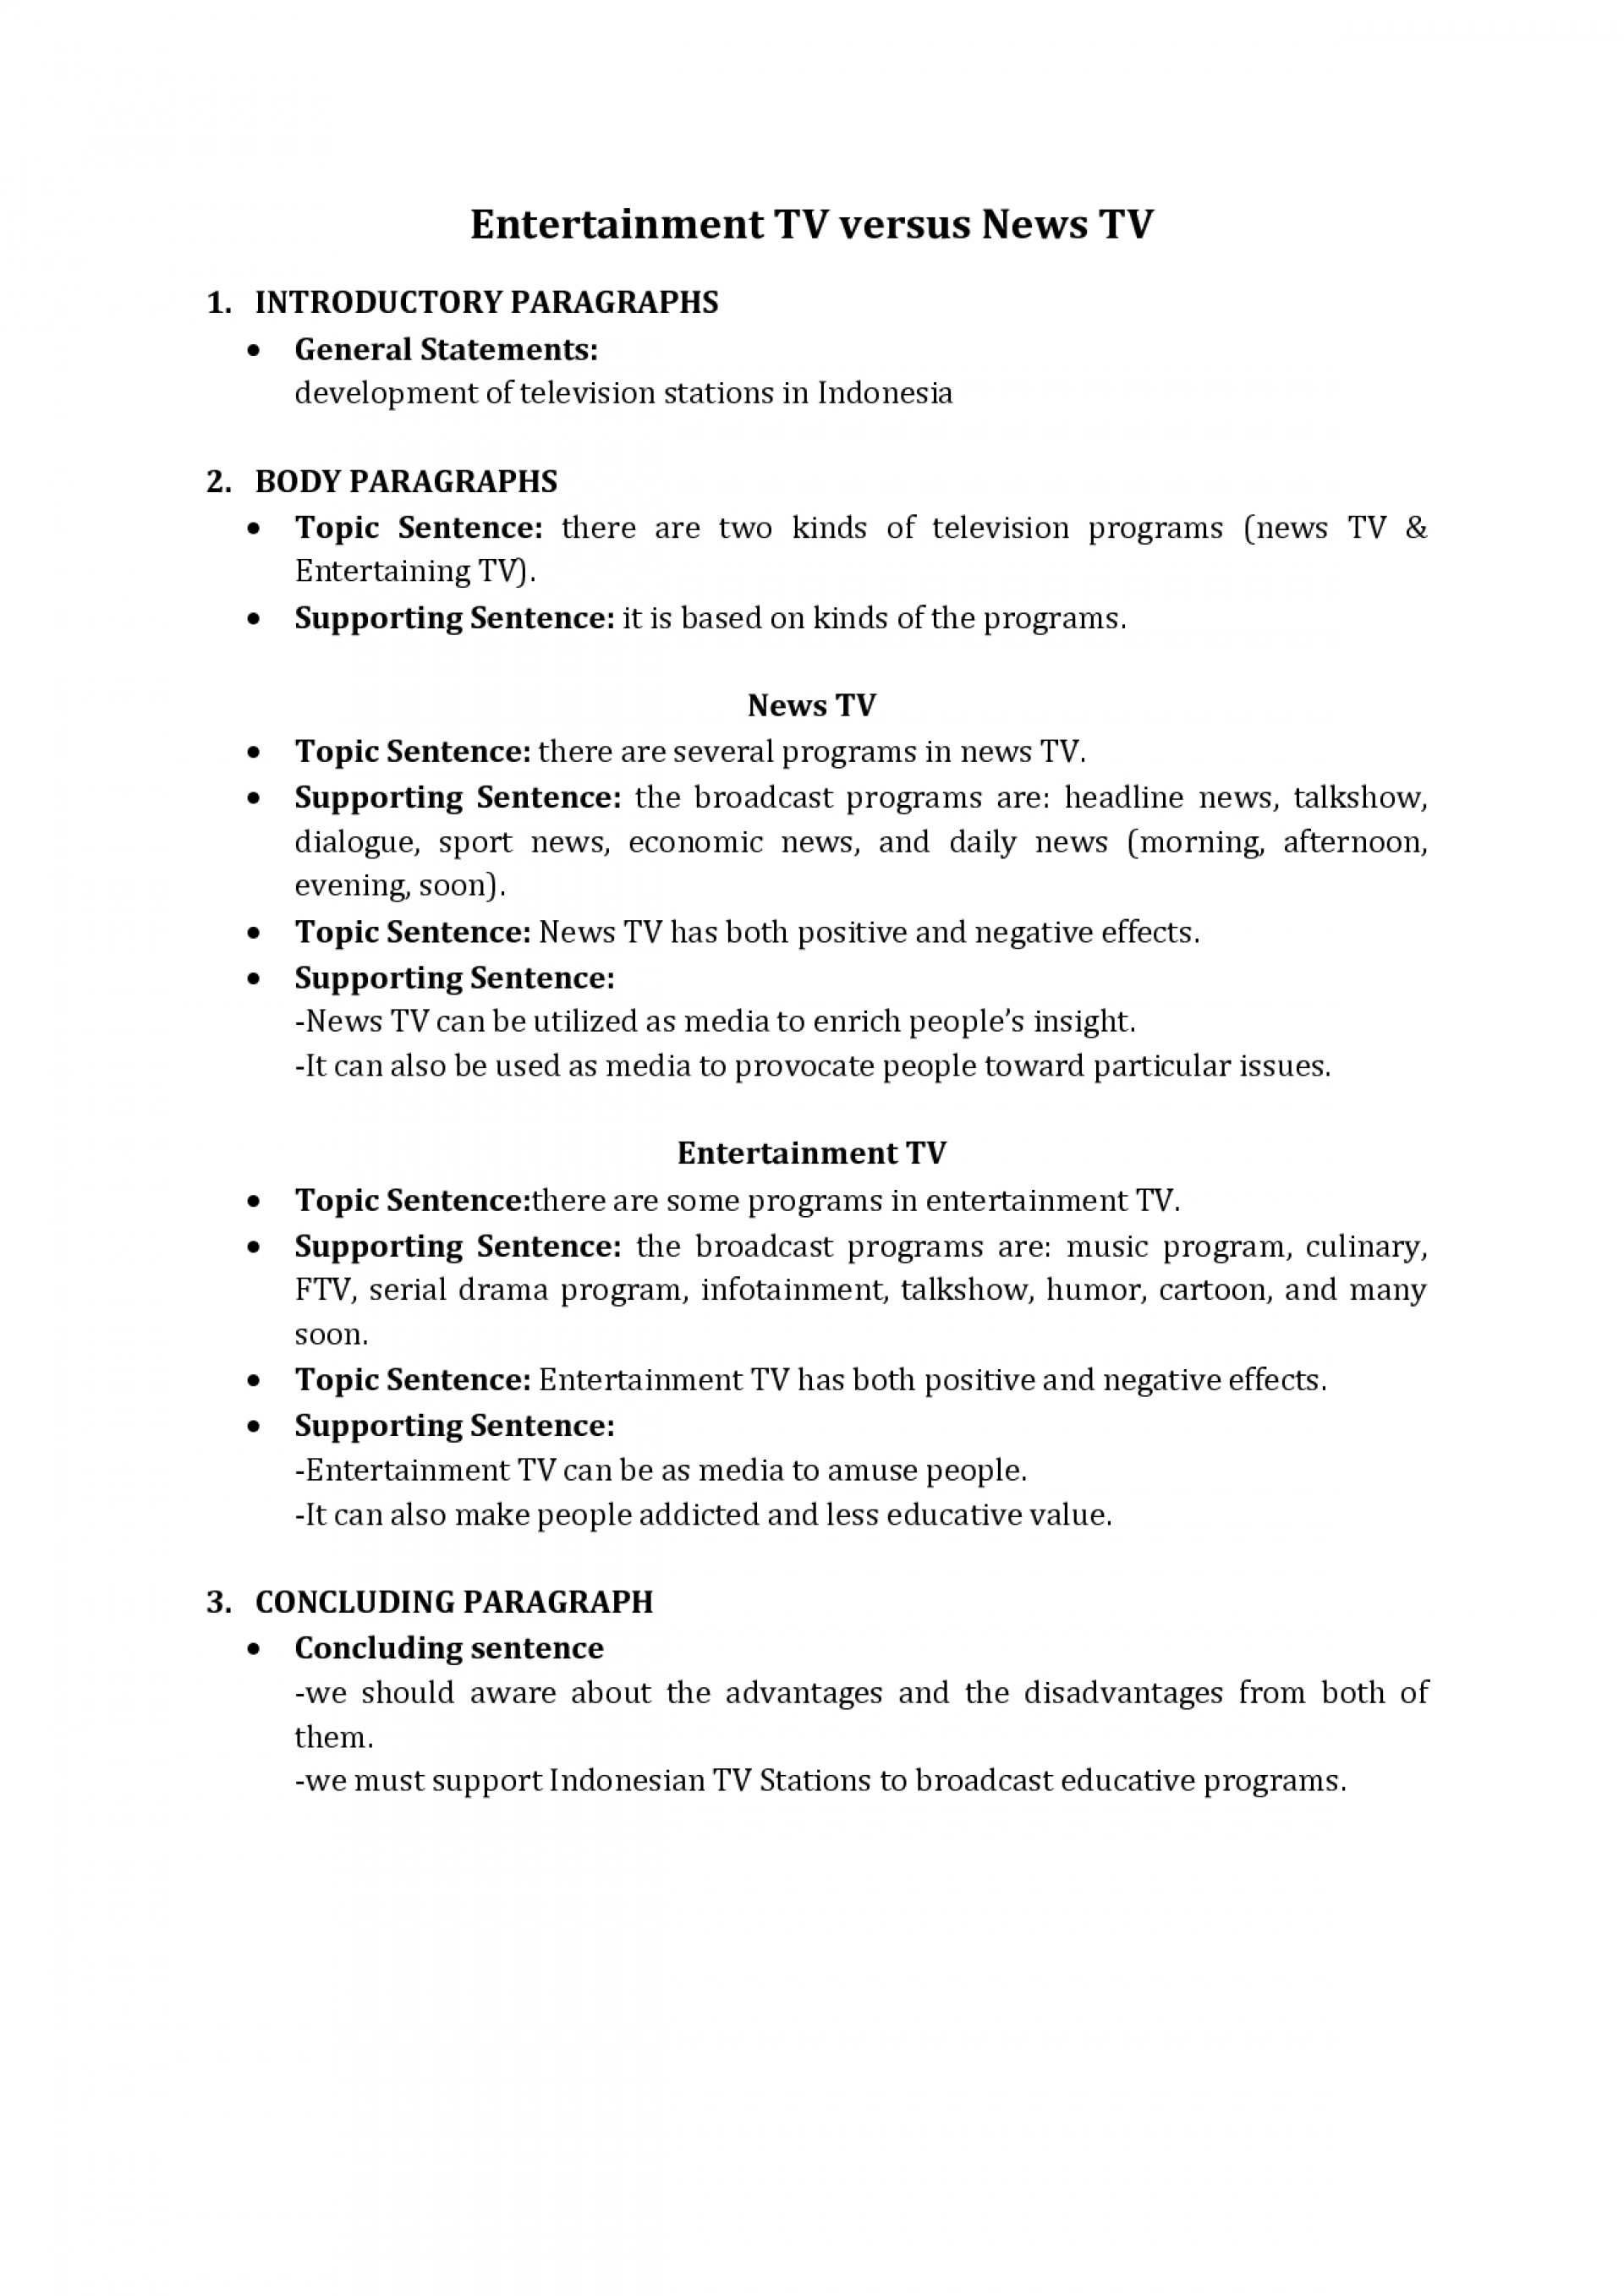 013 Essay Example College Outline Examples And Search On Pinterest Inmat What Is An Singular For Follows A Generic Argumentative About Capitalism Socialism Brainly 1920